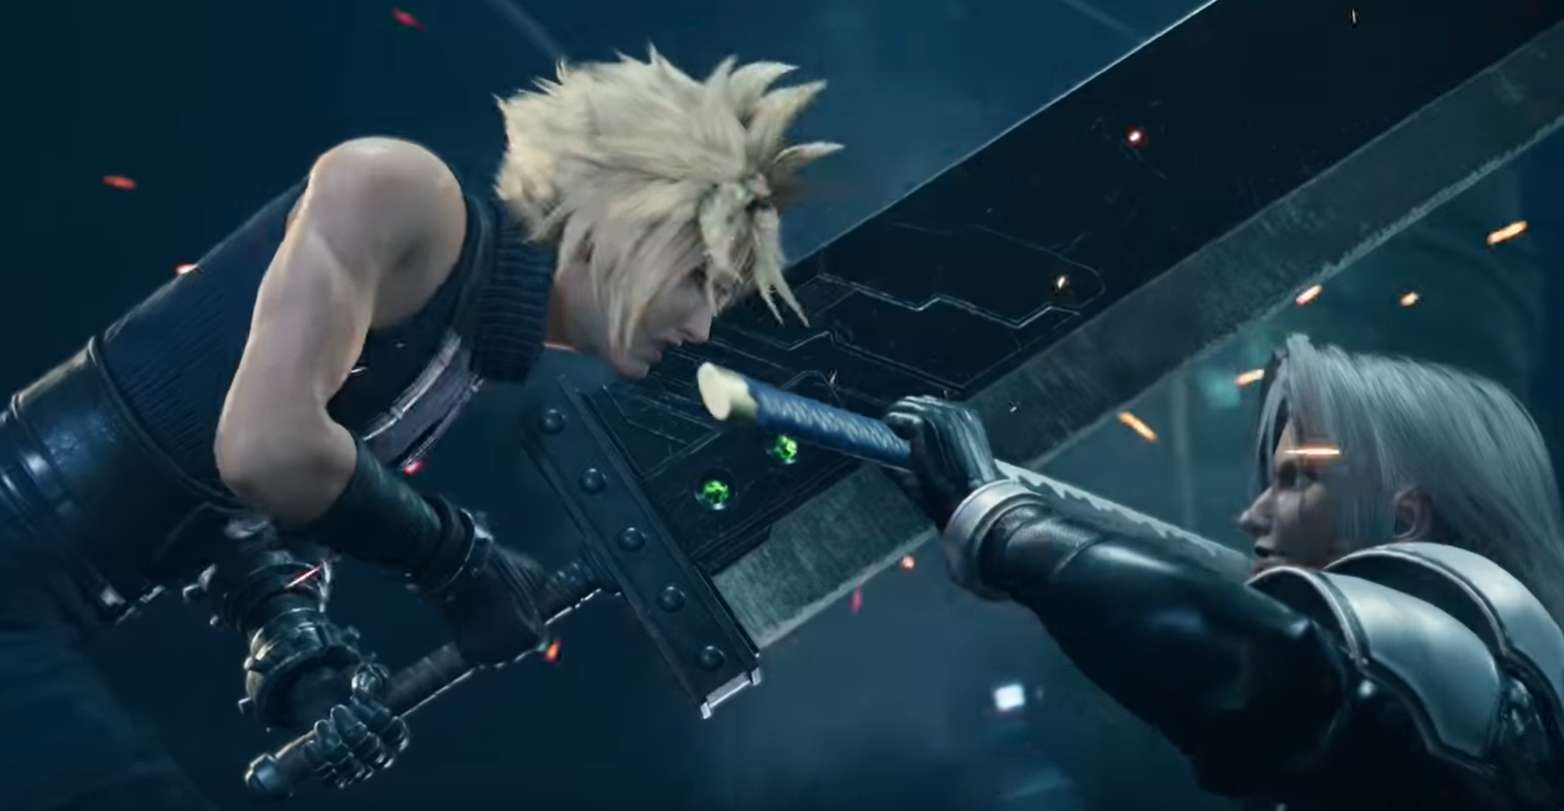 Final Fantasy 7 Remake Co-Director Talks About Bringing Characters From A Novel Into The Game